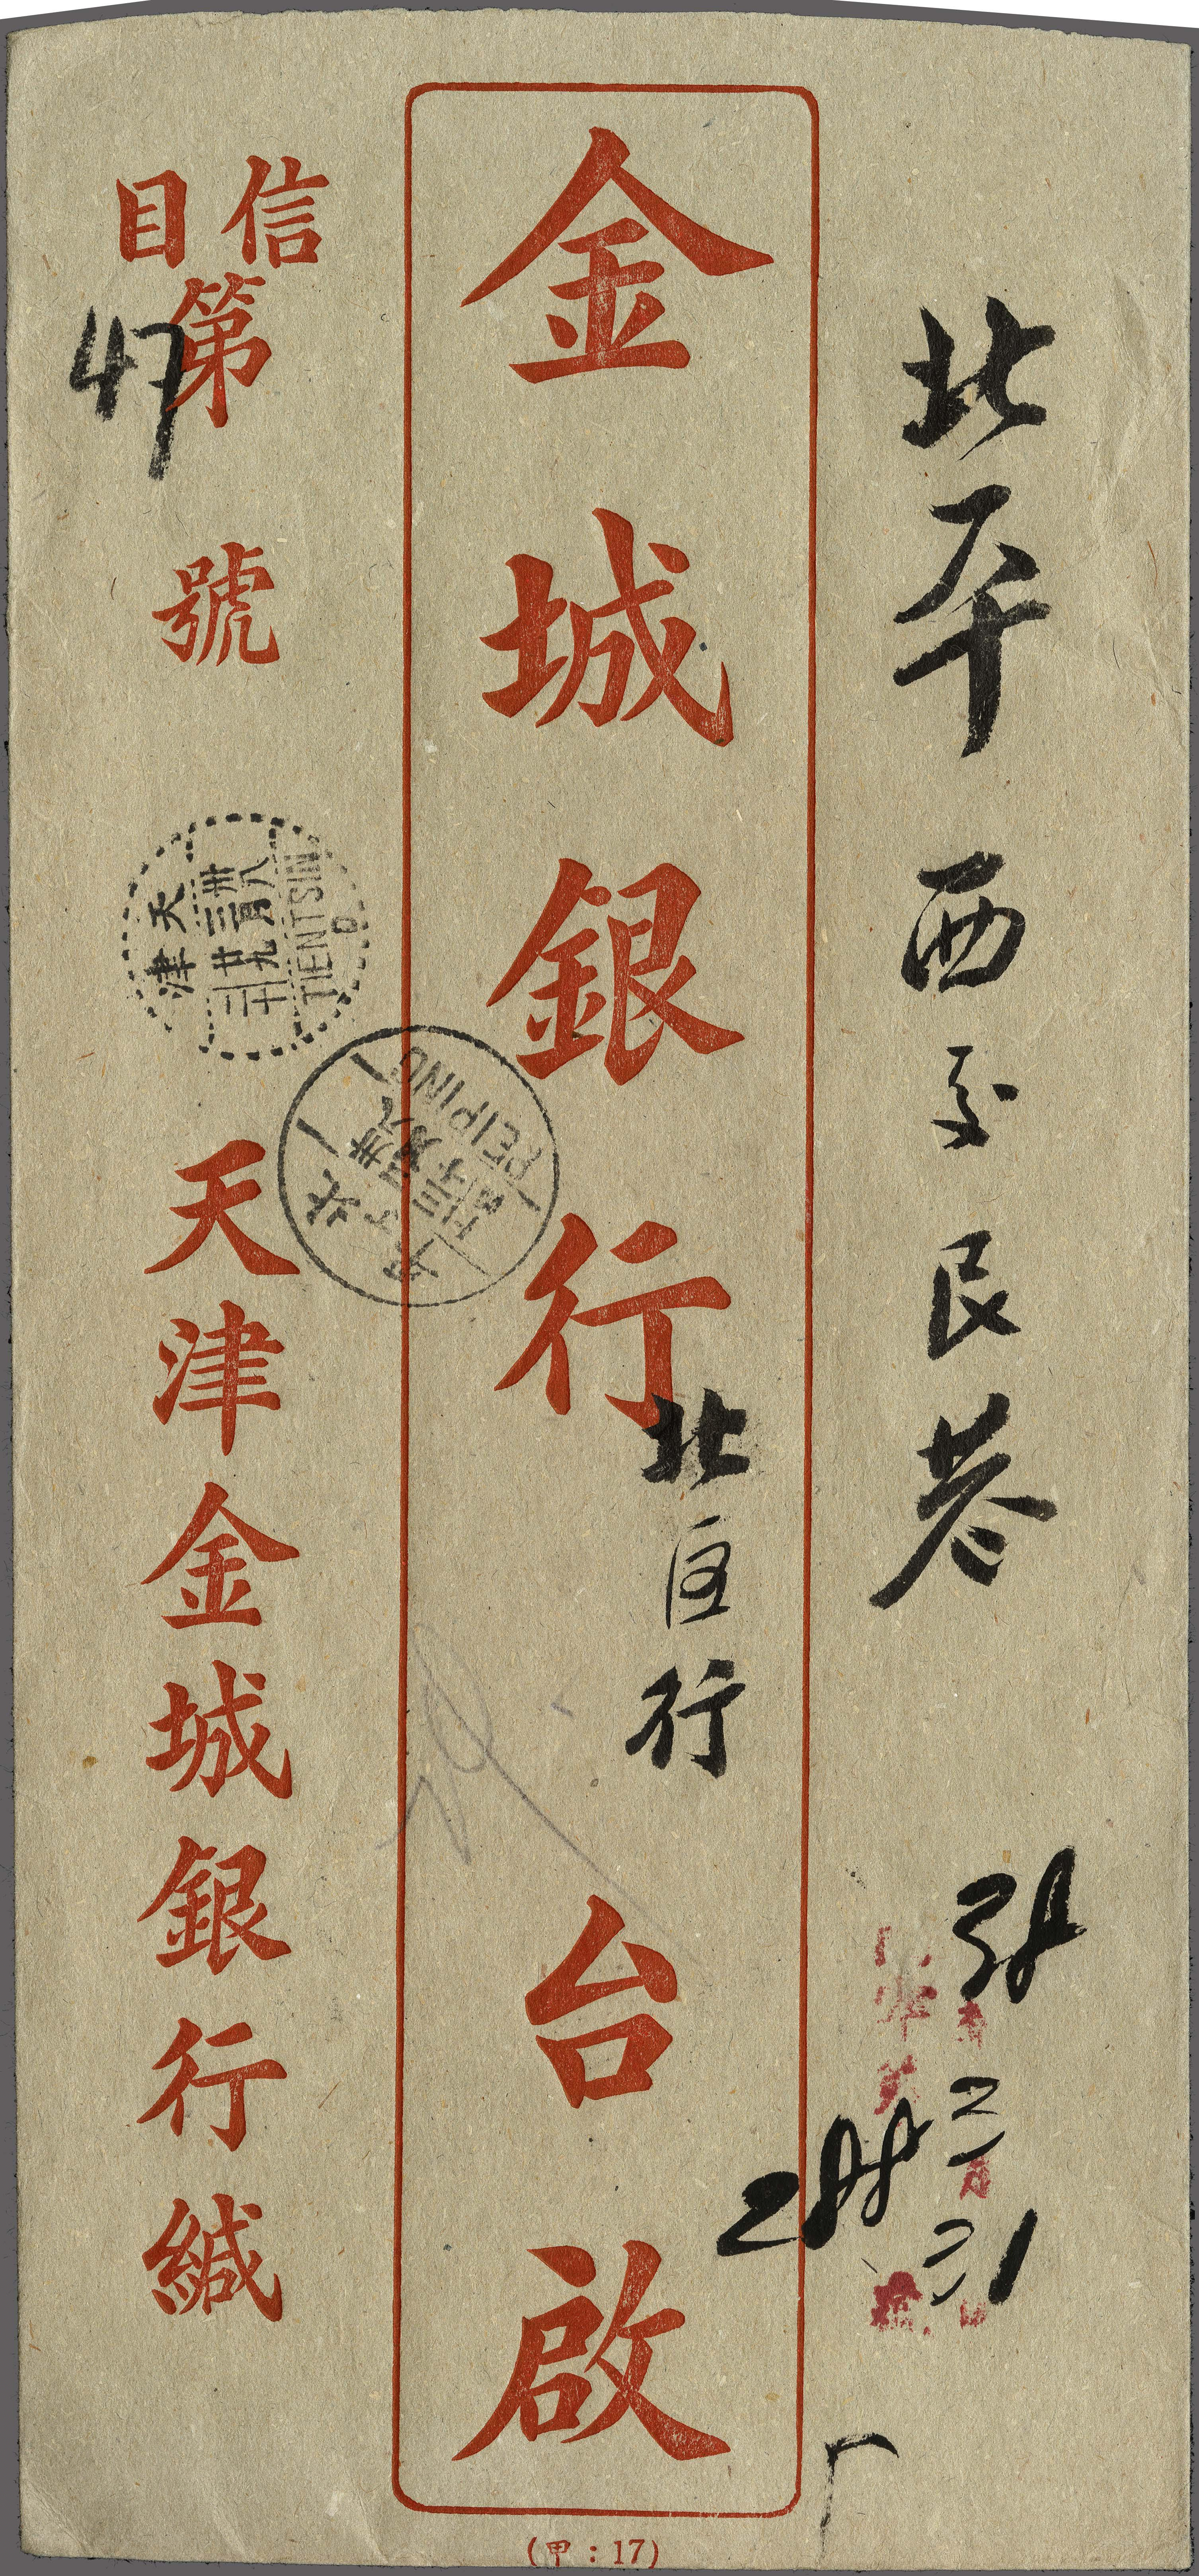 Lot 68 - China China Northern Provinces -  Corinphila Veilingen Auction 250-253 - Day 1 - Foreign countries